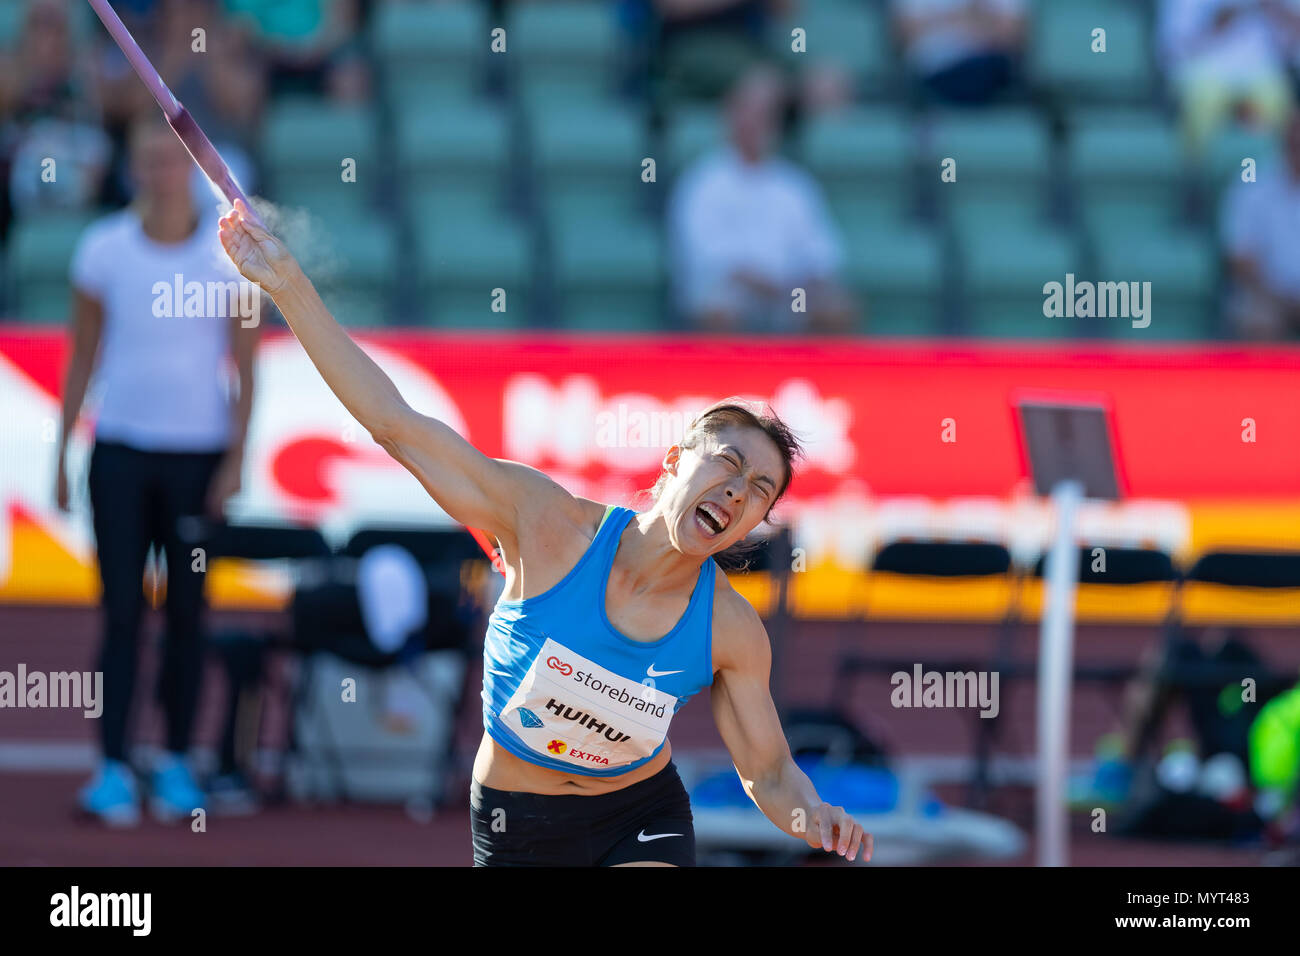 Oslo, Norway. 7th June 2018, Bislett stadium, Oslo, Norway; Bislett Games, Diamond League Athletics meeting; Huihui Lyn of China competes in the ladies javelin during the IAAF Diamond League held at the Bislett Stadium Credit: Action Plus Sports Images/Alamy Live News - Stock Image